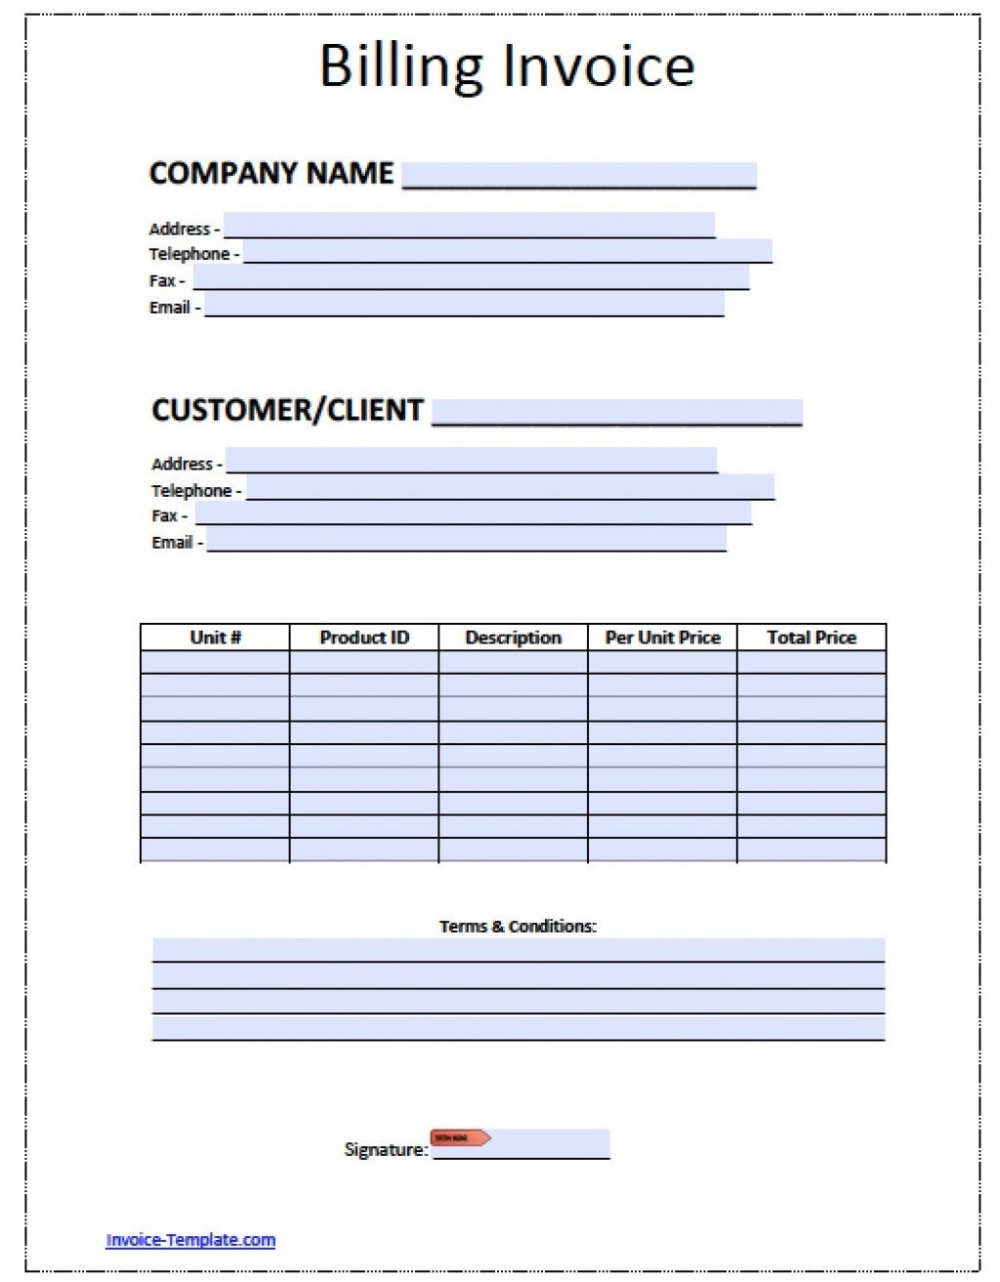 Blank Bill Template Ee Printable Invoice Templates Excel Utility